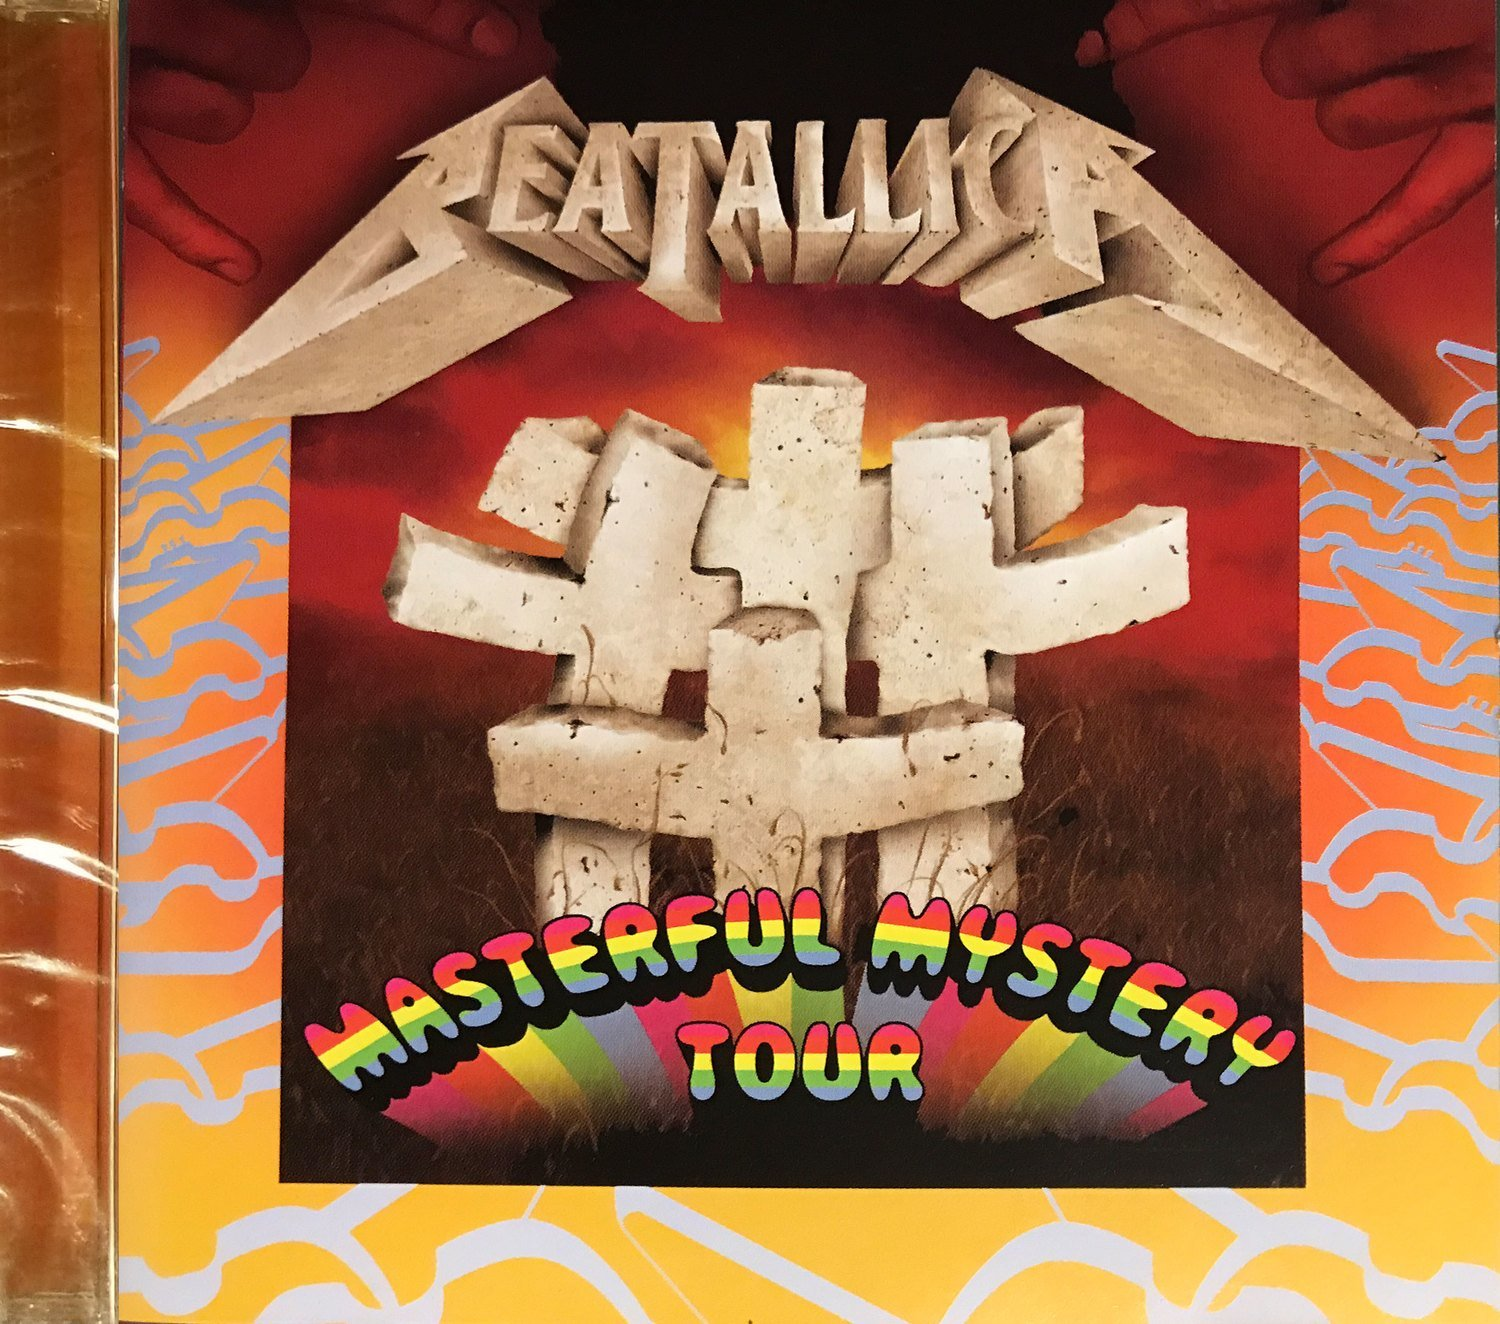 Masterful Mystery Tour cd